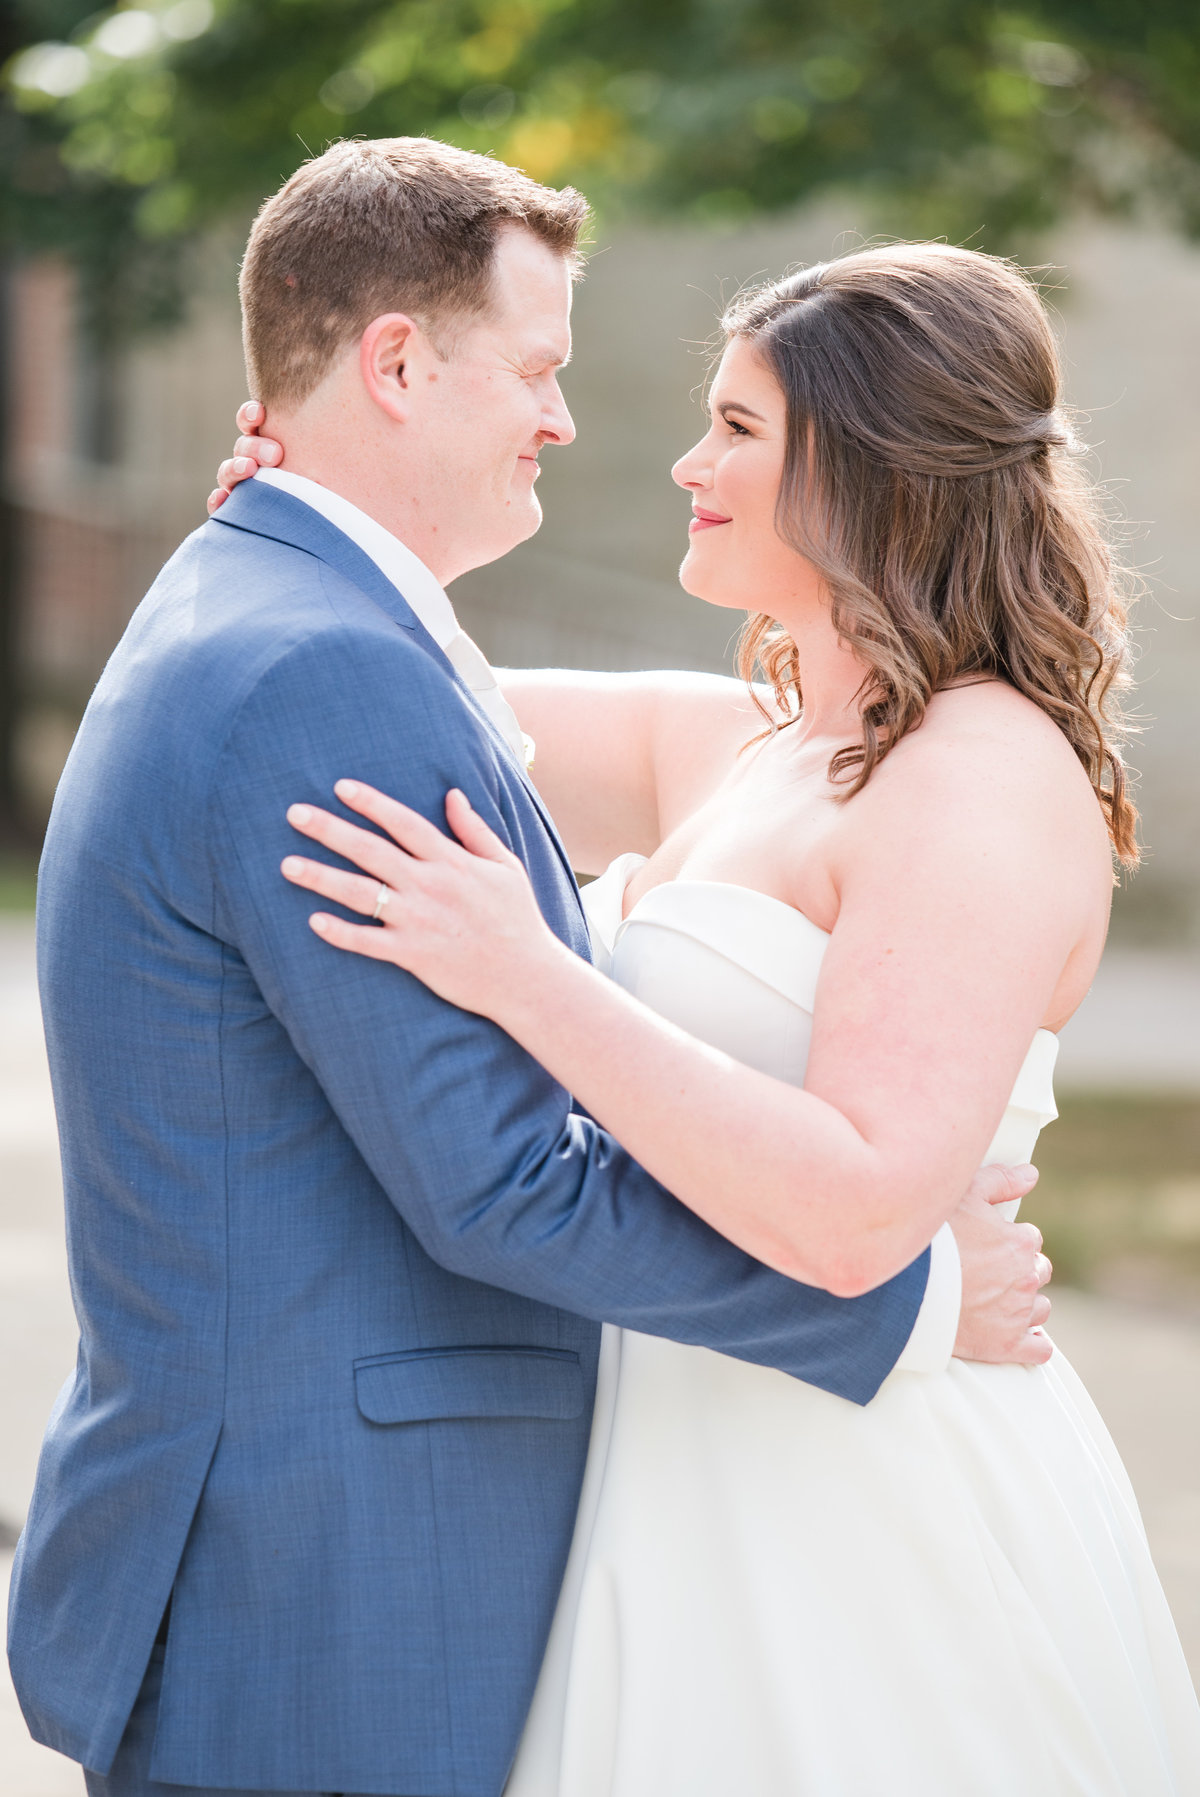 Newlywed Portraits Cait Potter Creative LLC Milltop Potters Bridge Noblesville Square Courthouse Wedding-16